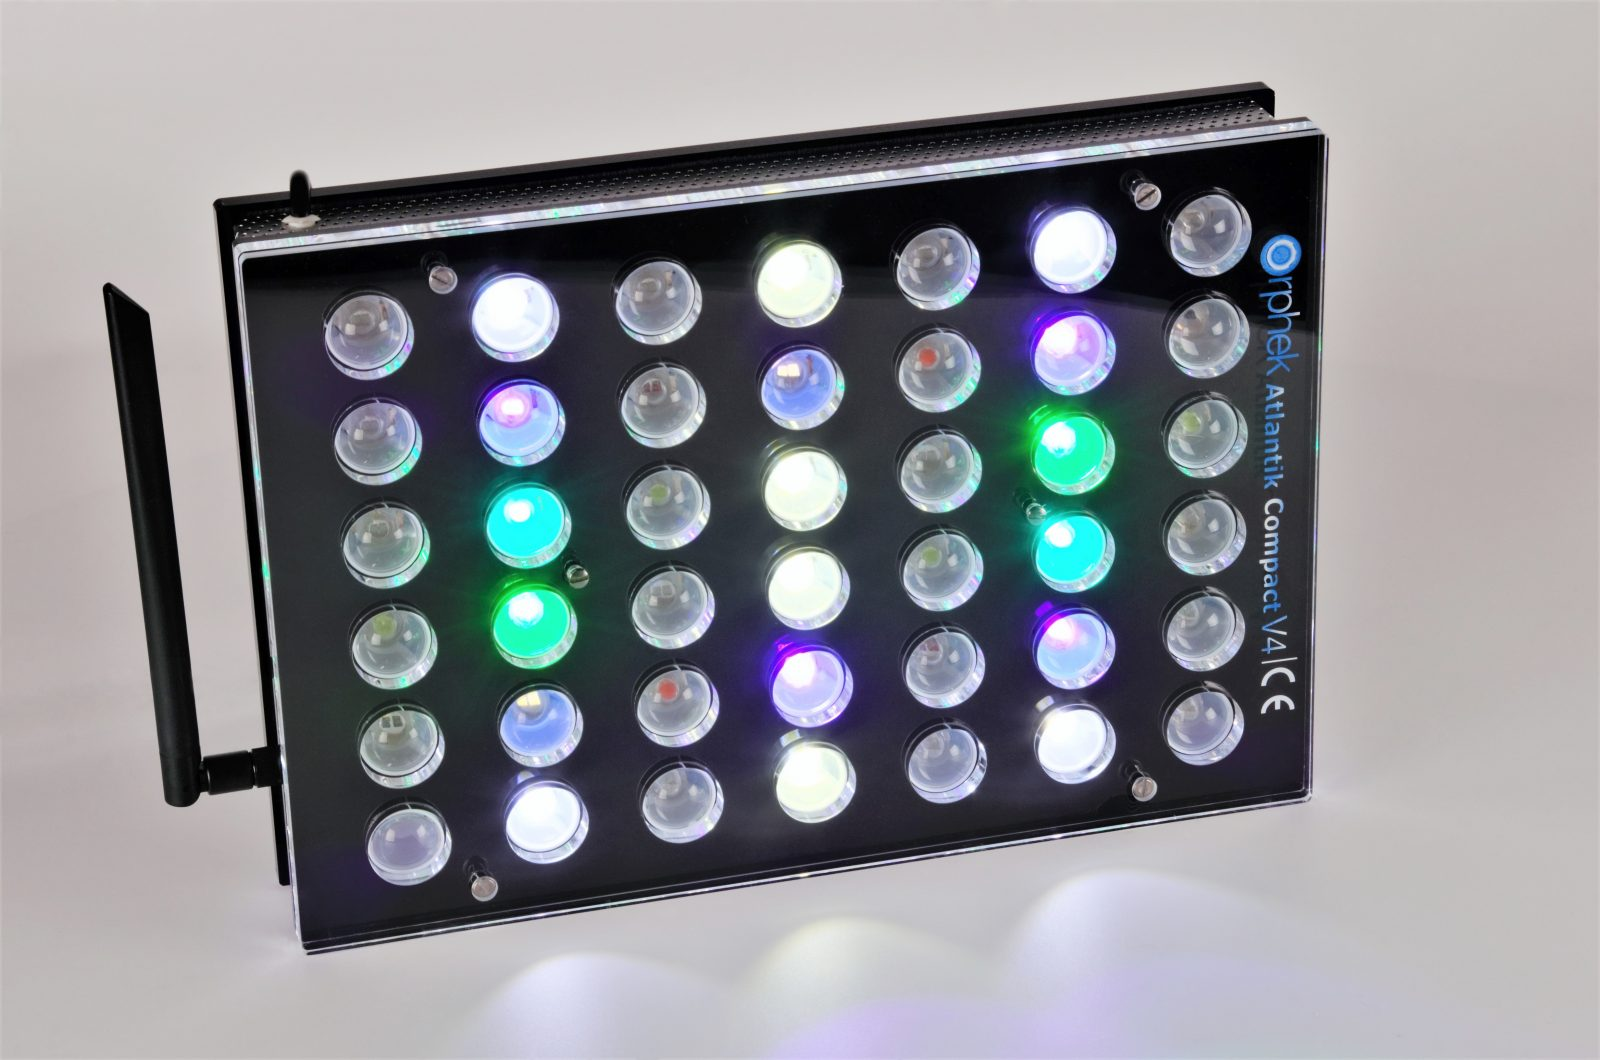 Orphek-Aquarium-LED-Lighting-Atlantik-کمپیکٹ - V4-روشنی -لینلین 1 + 3